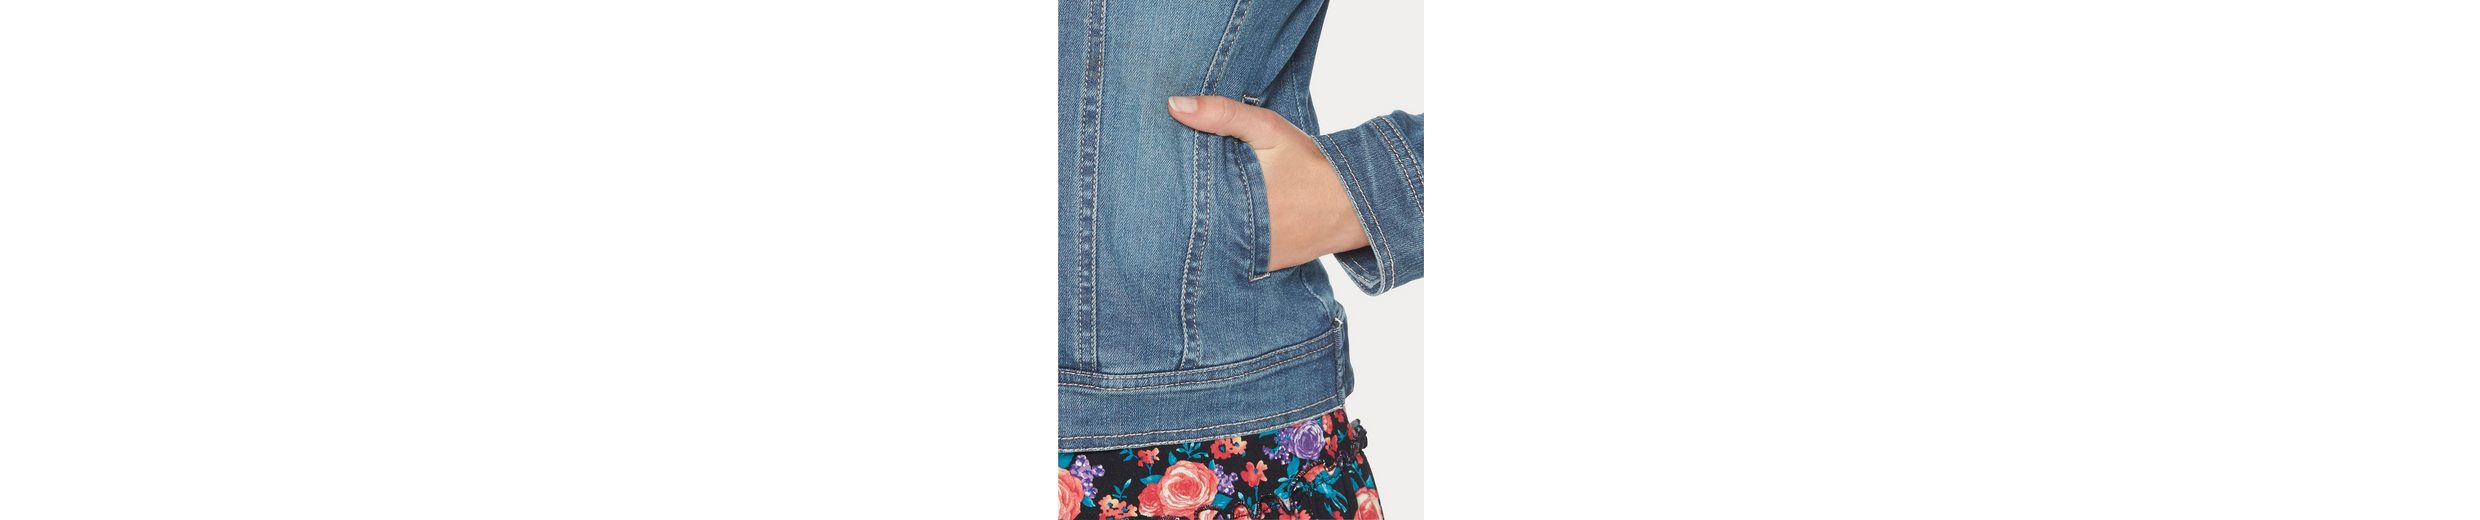 Cheer Jeansjacke, in Used-Waschung